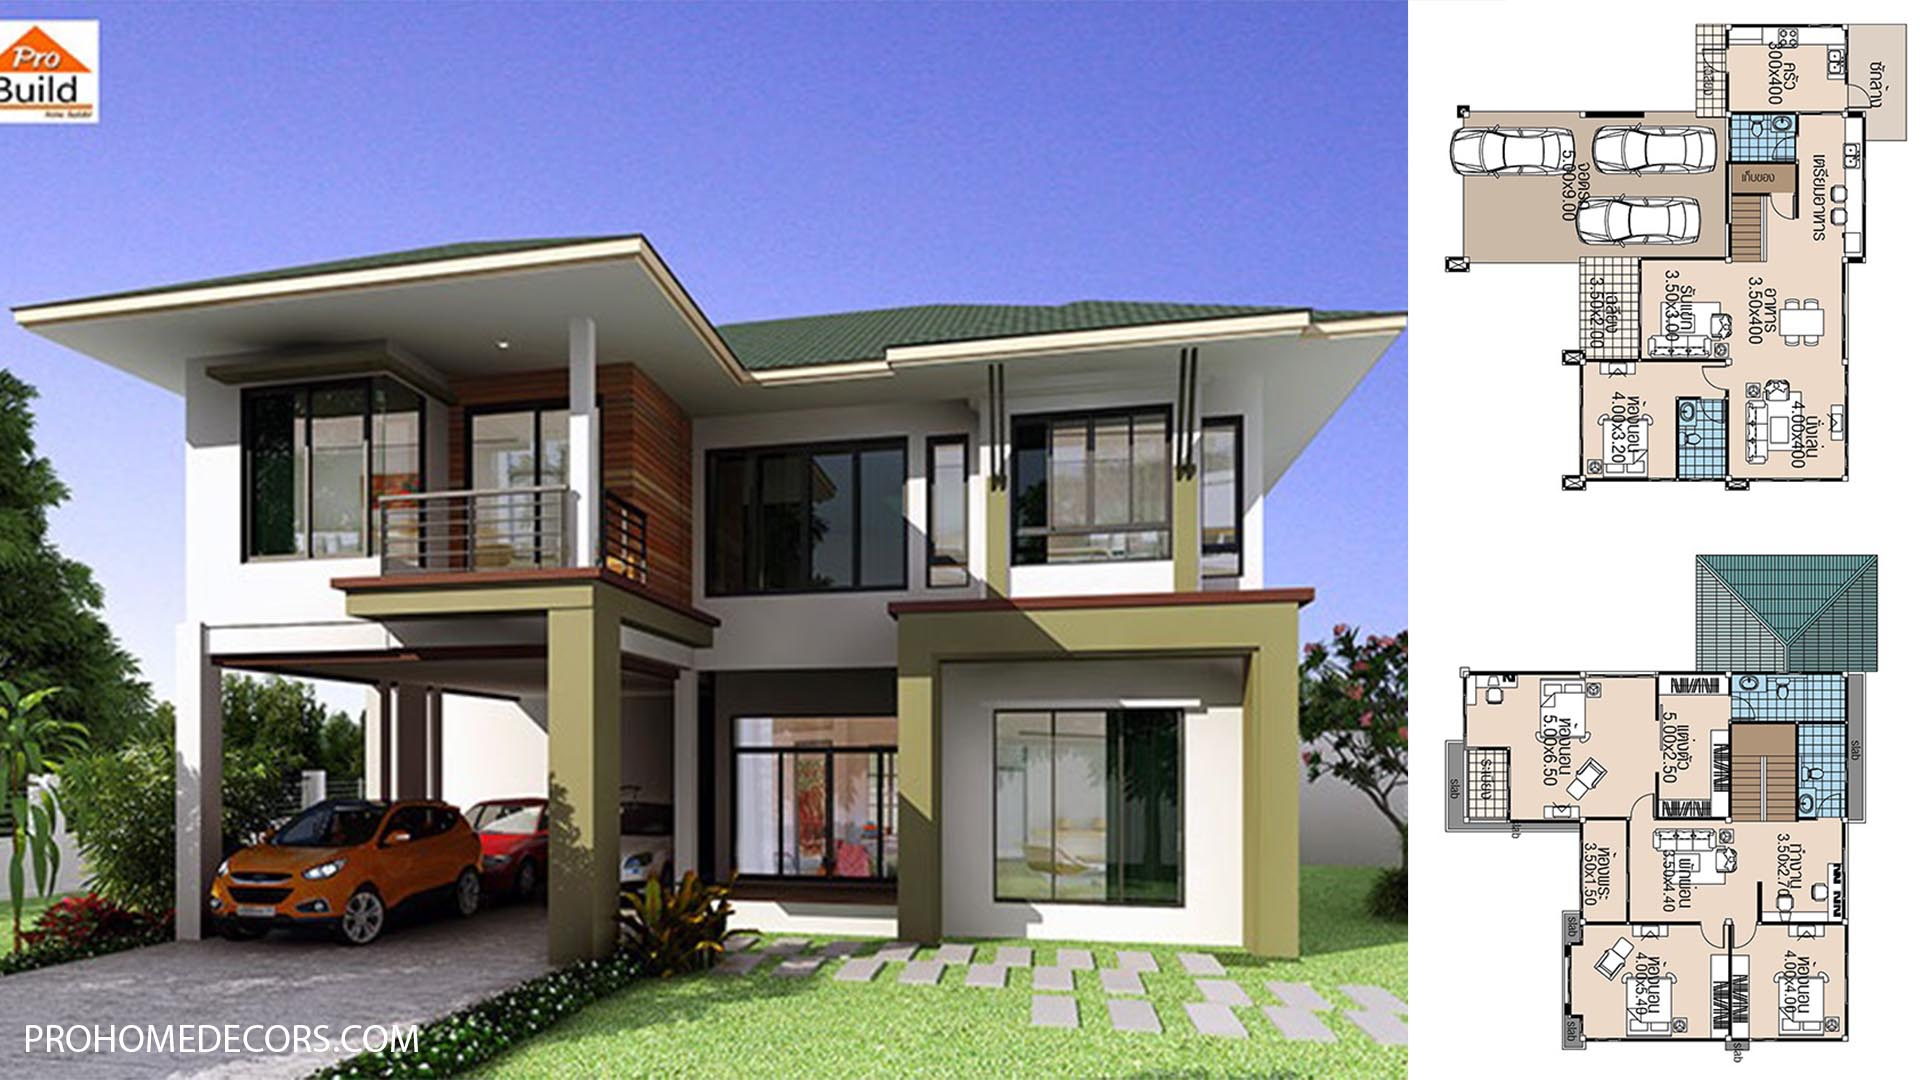 House-plans-15.5x13-with-4-Beds